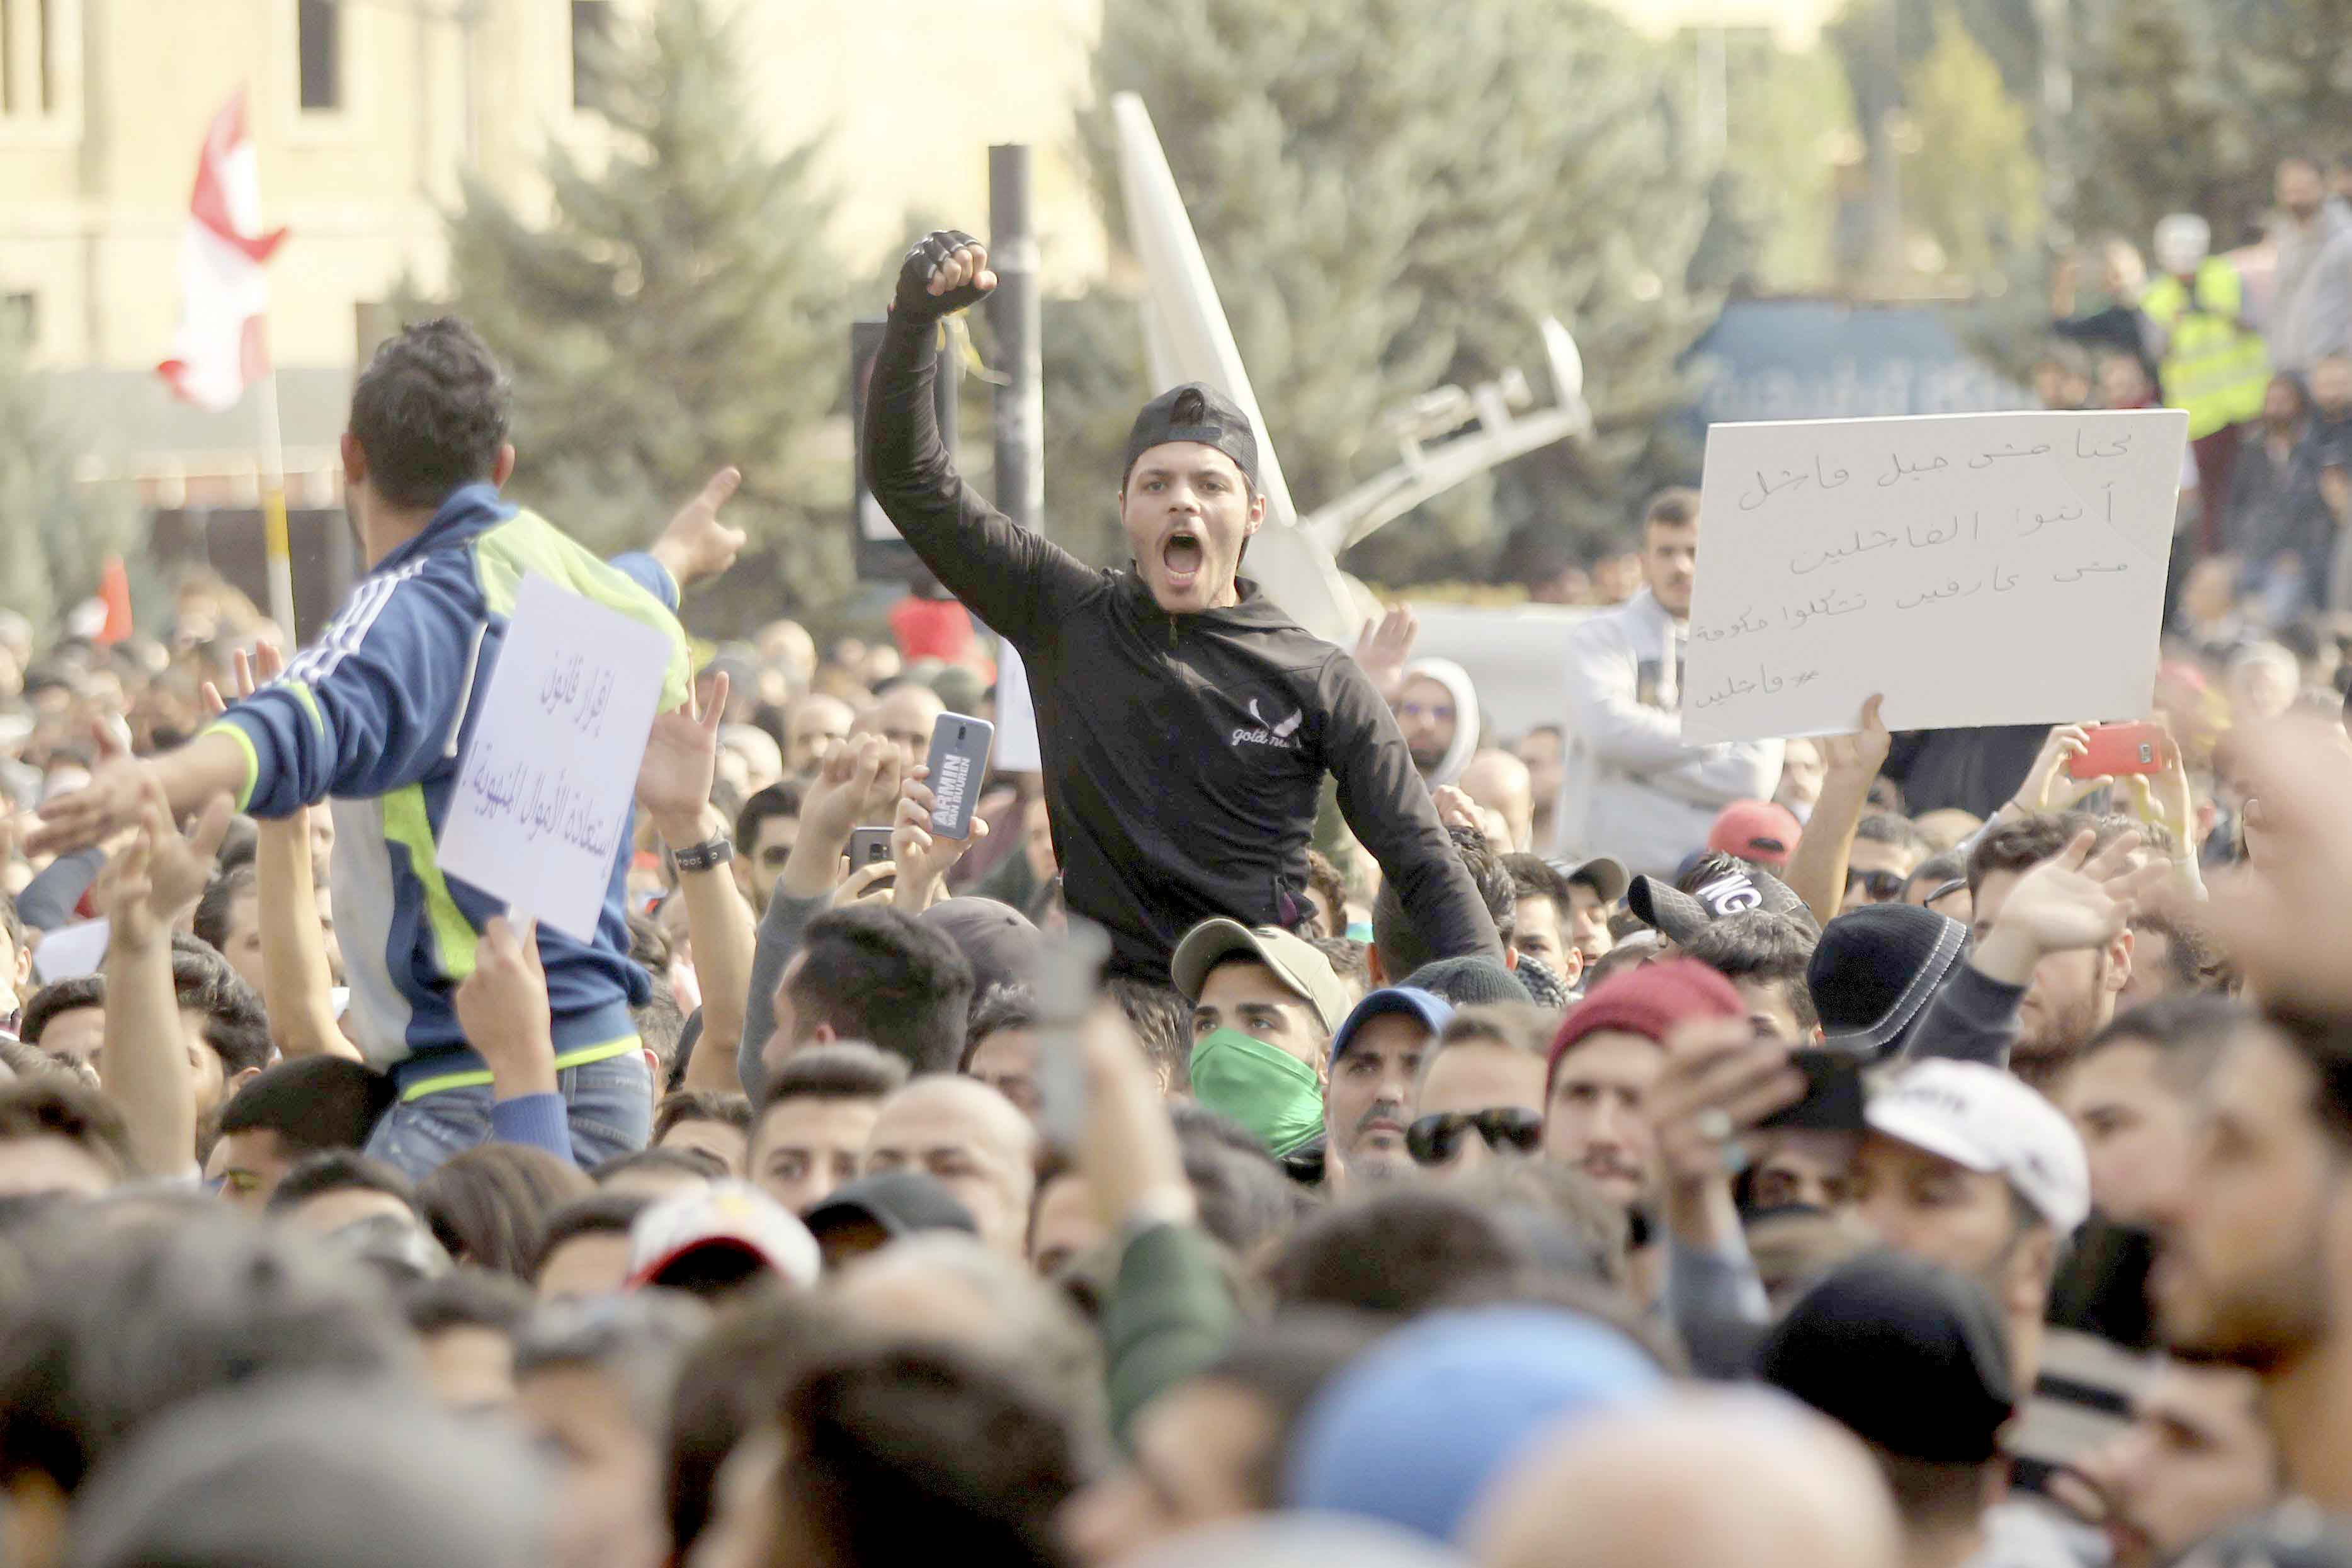 A Lebanese man shouts slogans during a protest against the months-long failure of rival political factions to agree on forming a new government, December 23. (dpa)